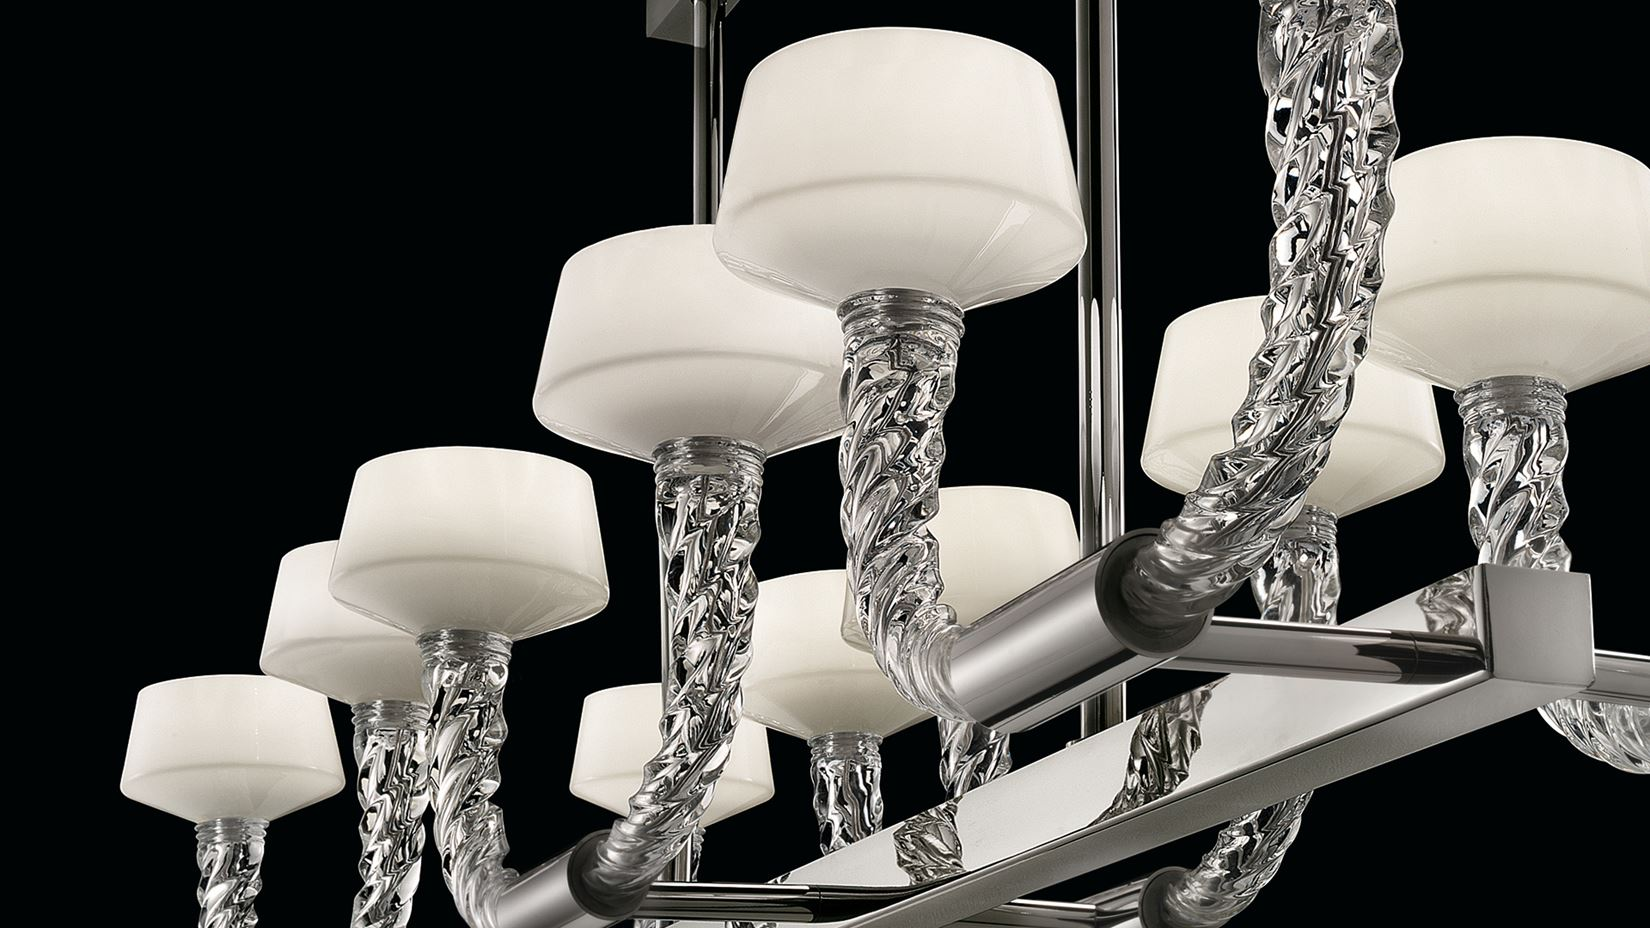 Barovier & Toso Twins